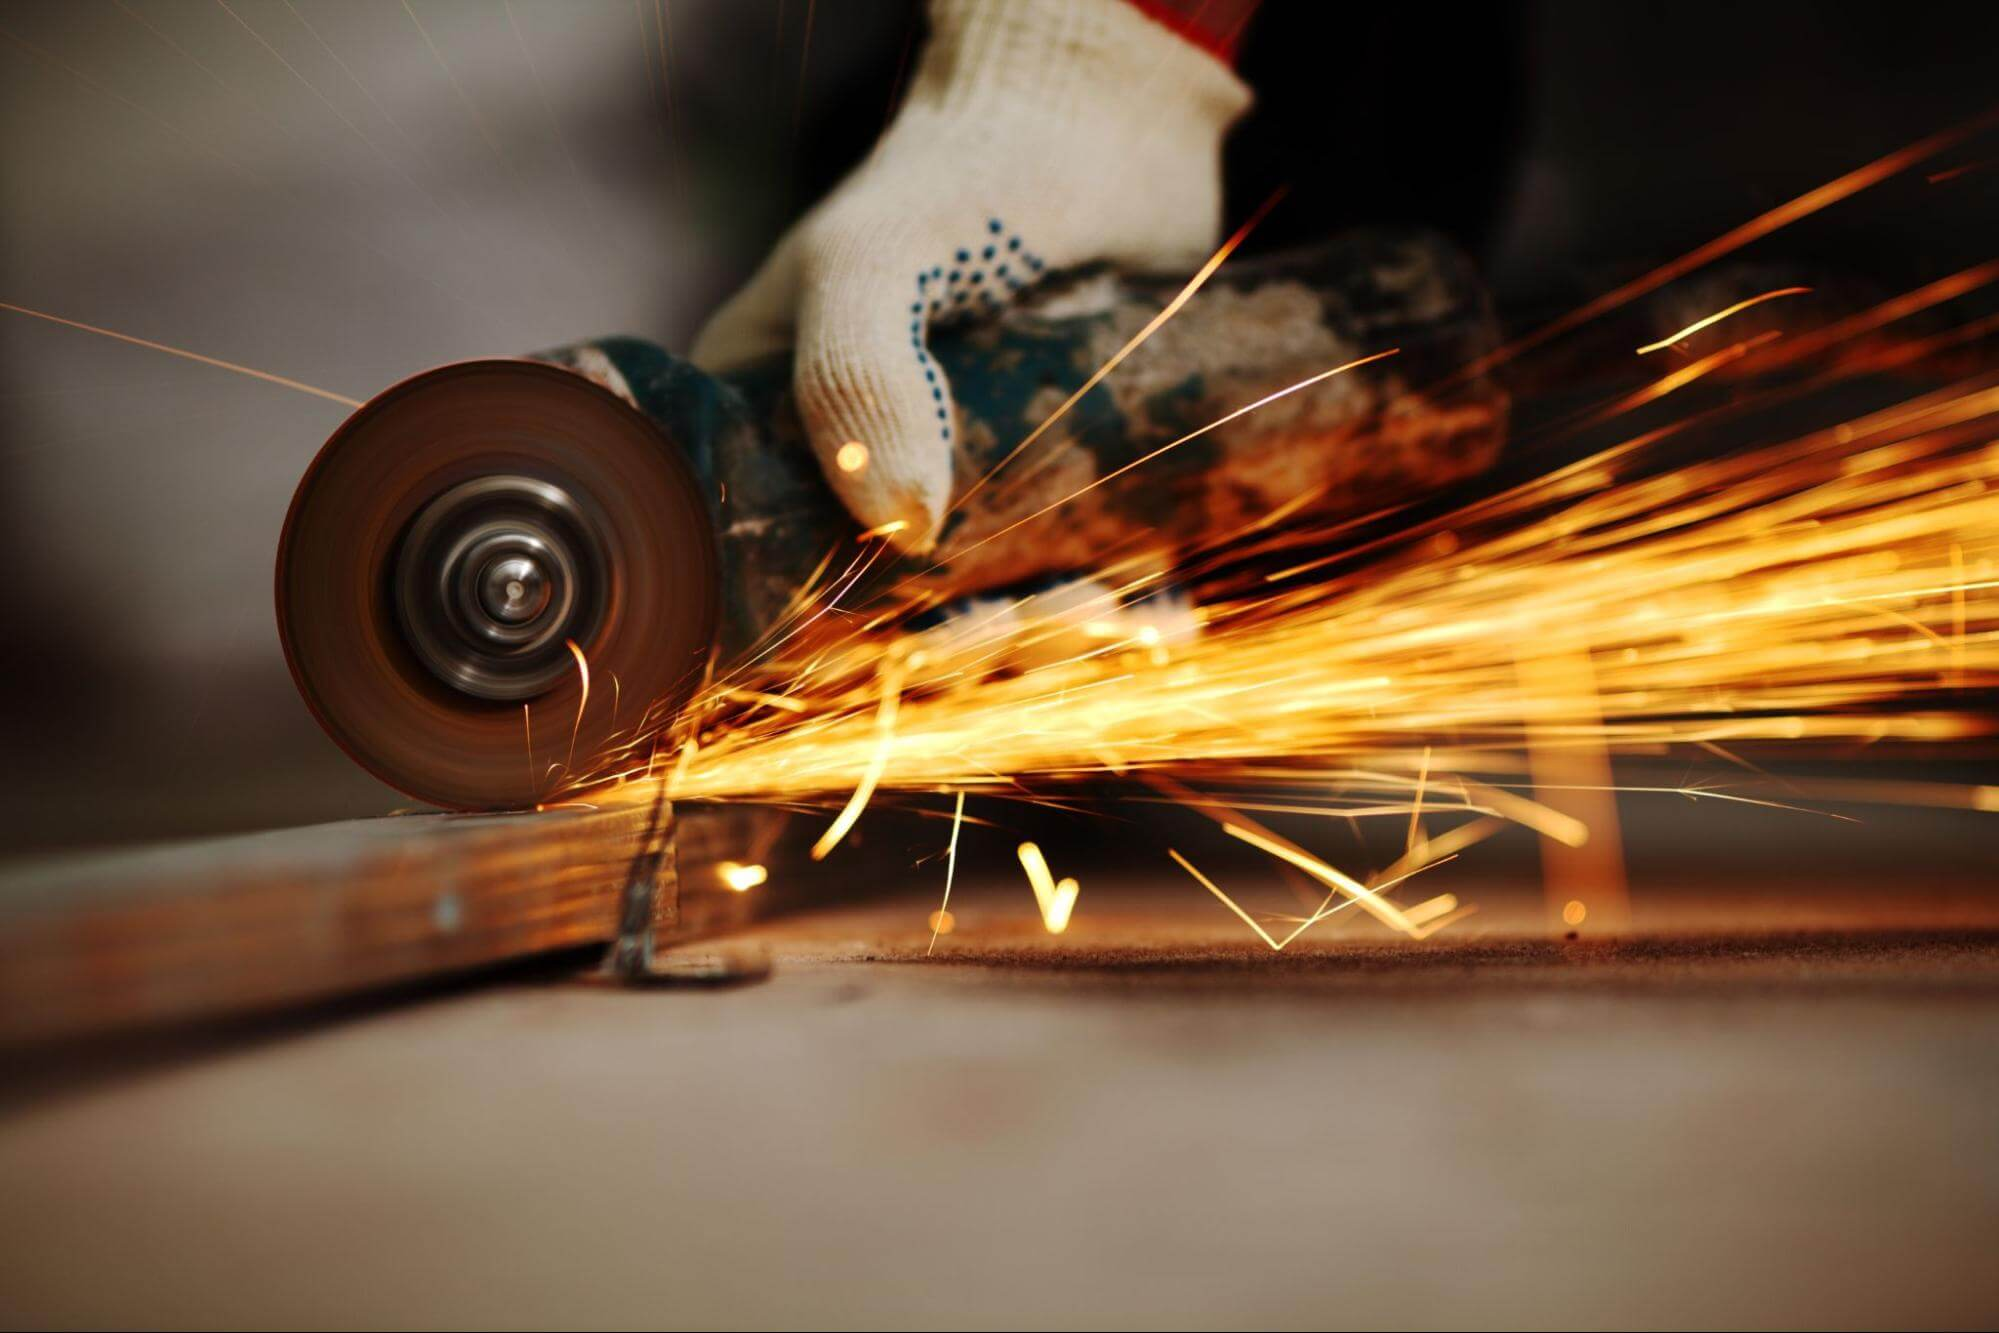 A blade grinds against a piece of metal. Sparks fly